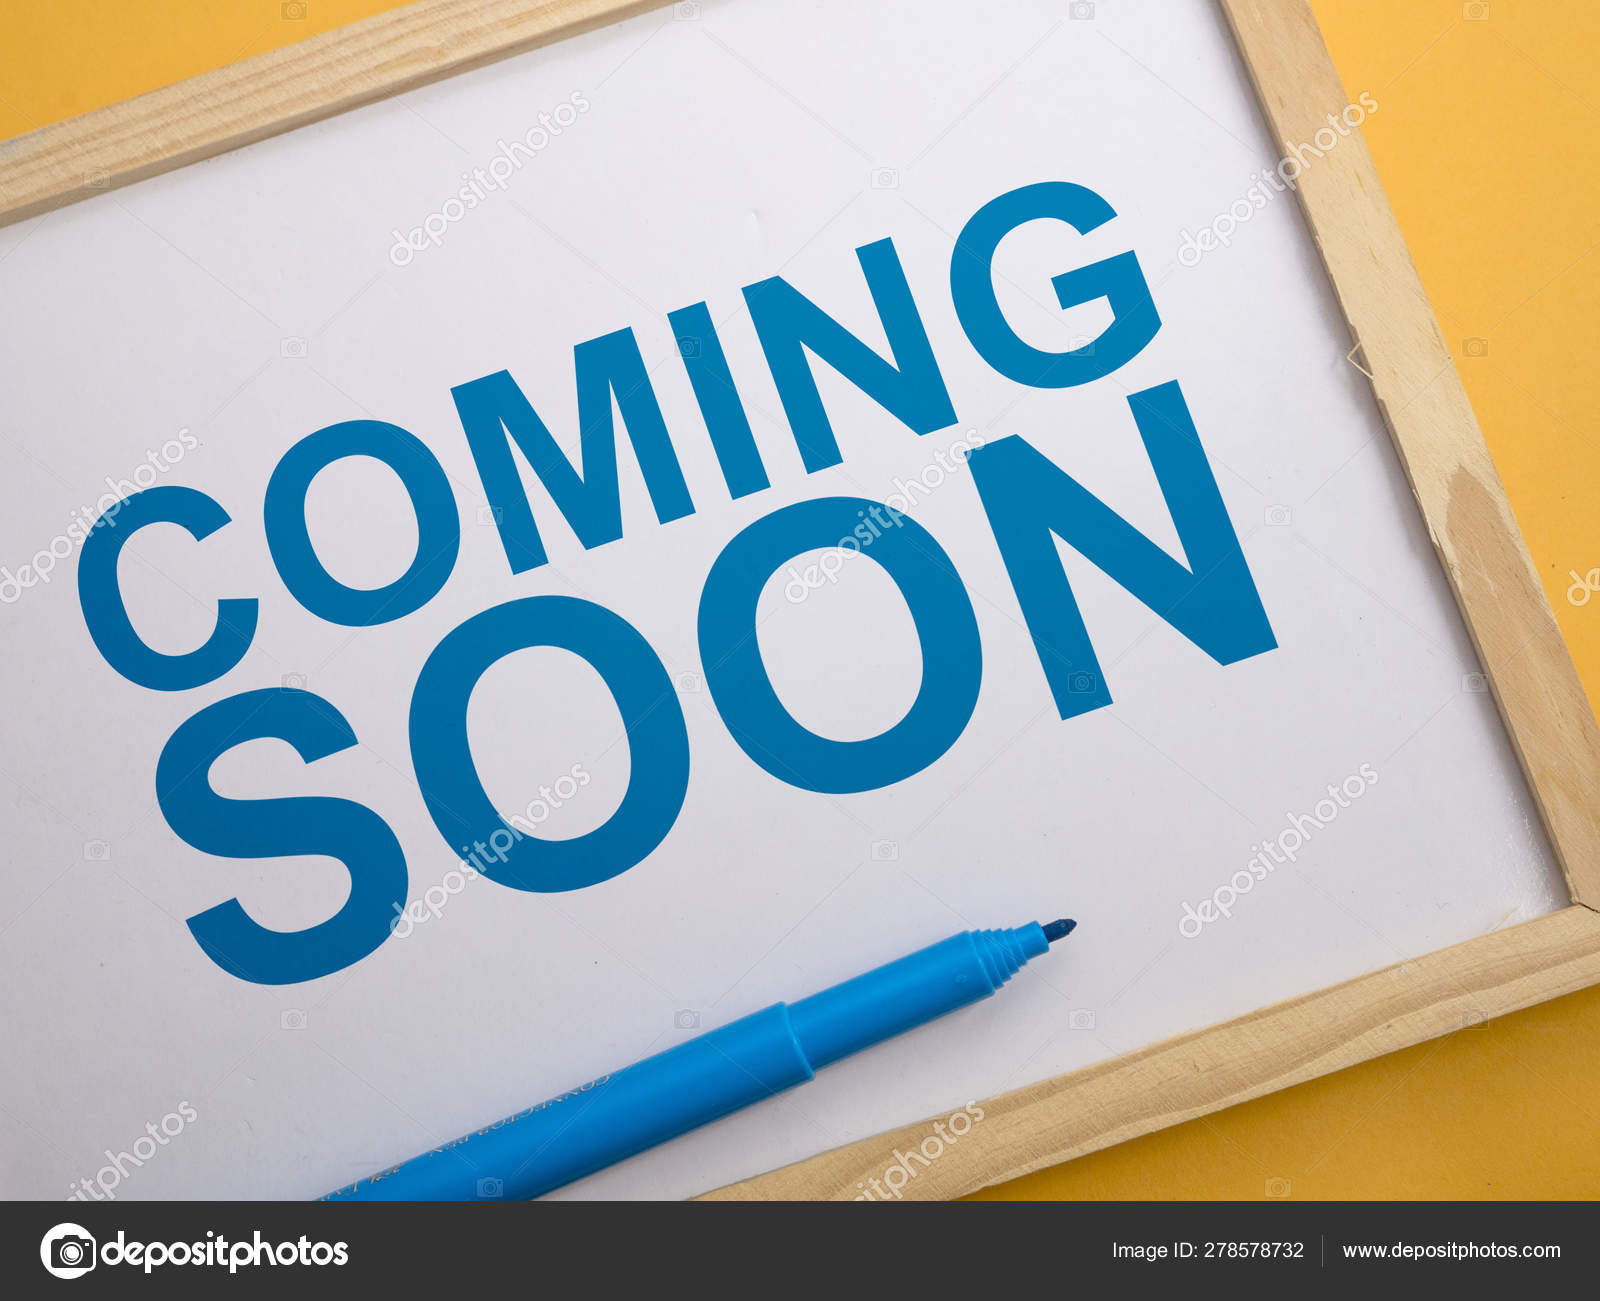 Coming Soon Words Typography Concept Stock Photo C Airdone 278578732